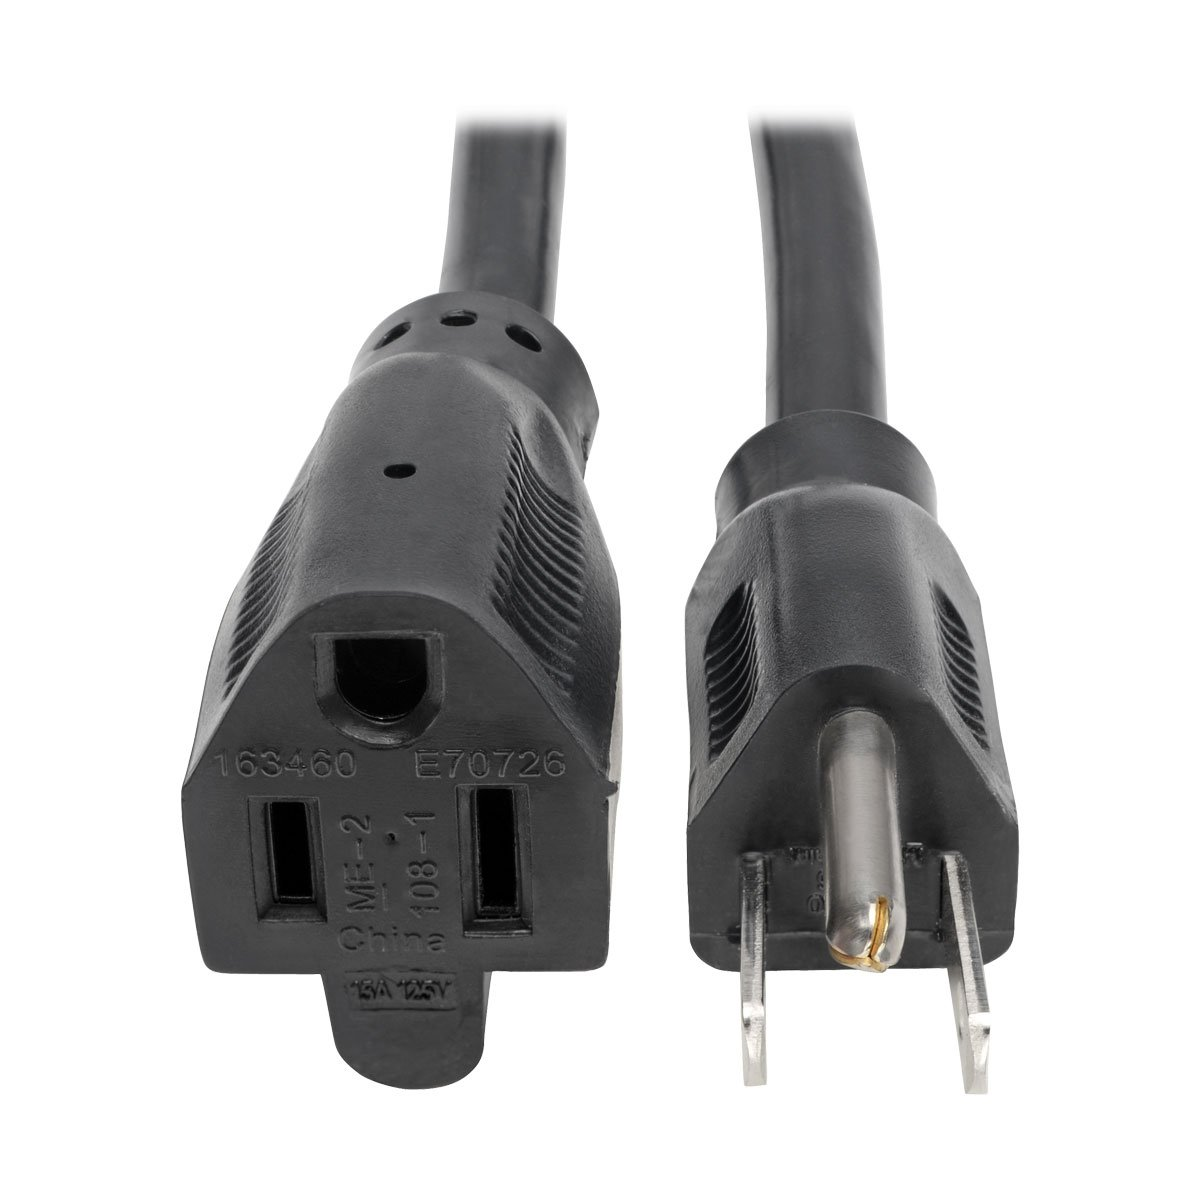 Tripp Lite Heavy-Duty Power Extension Cord 15A, 14AWG (NEMA 5-15P to NEMA 5-15R) 3-ft.(P024-003)